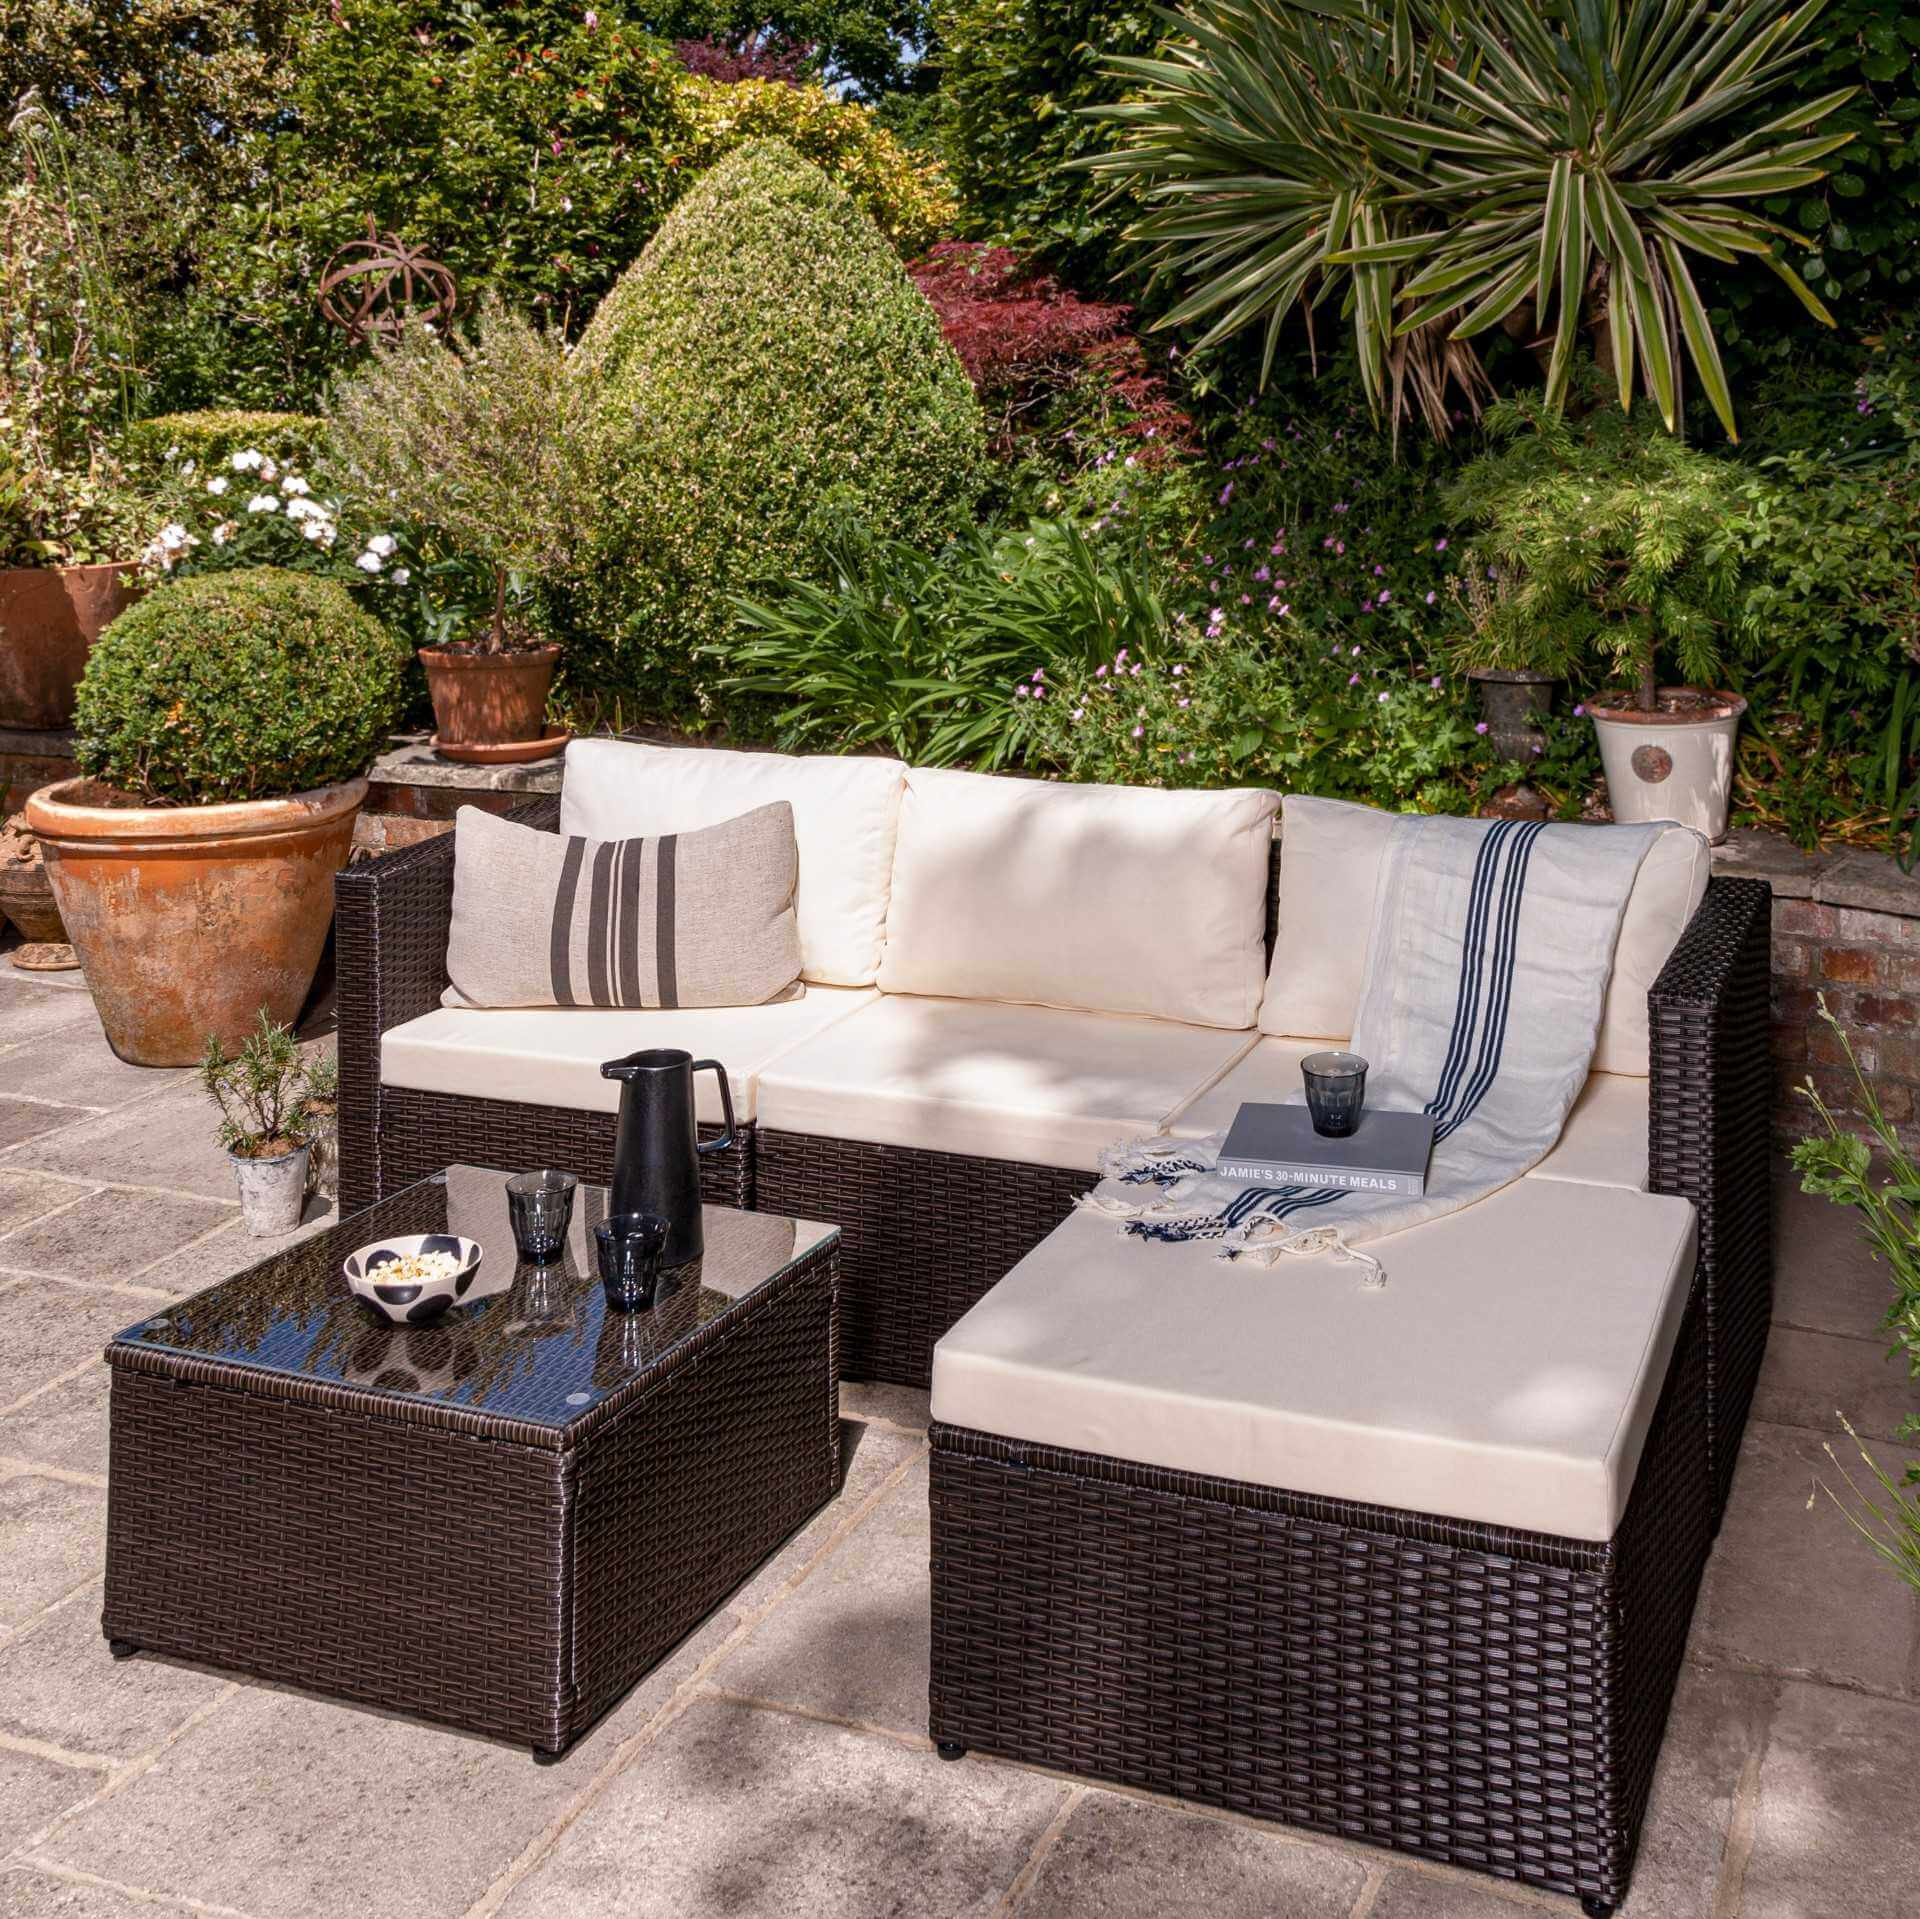 4 Seater Rattan Corner Sofa Set - Brown Weave - Laura James